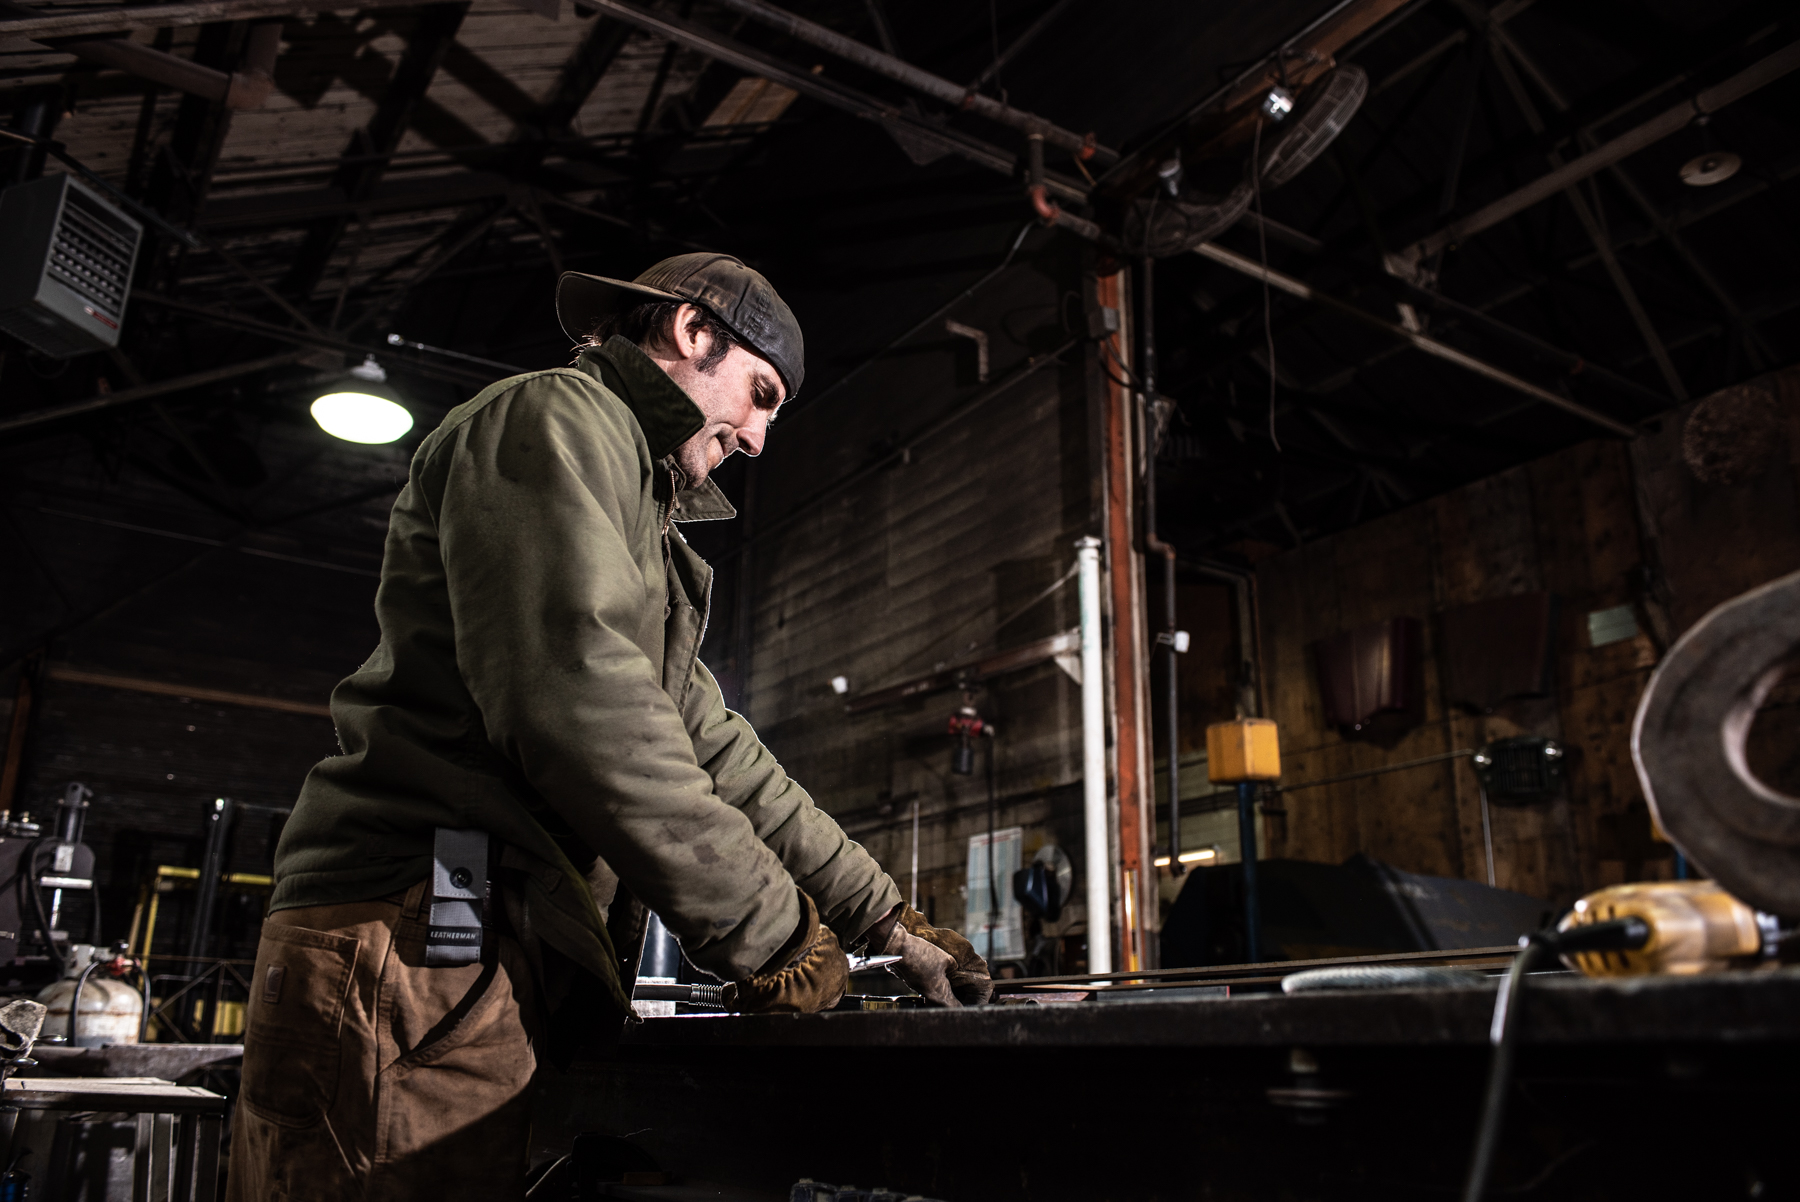 Welding in old Montana industrial building. Isaac Miller Photography  | Agriculture & Industry Photographer  |  Commercial & Editorial photography  |   Missoula + San Antonio